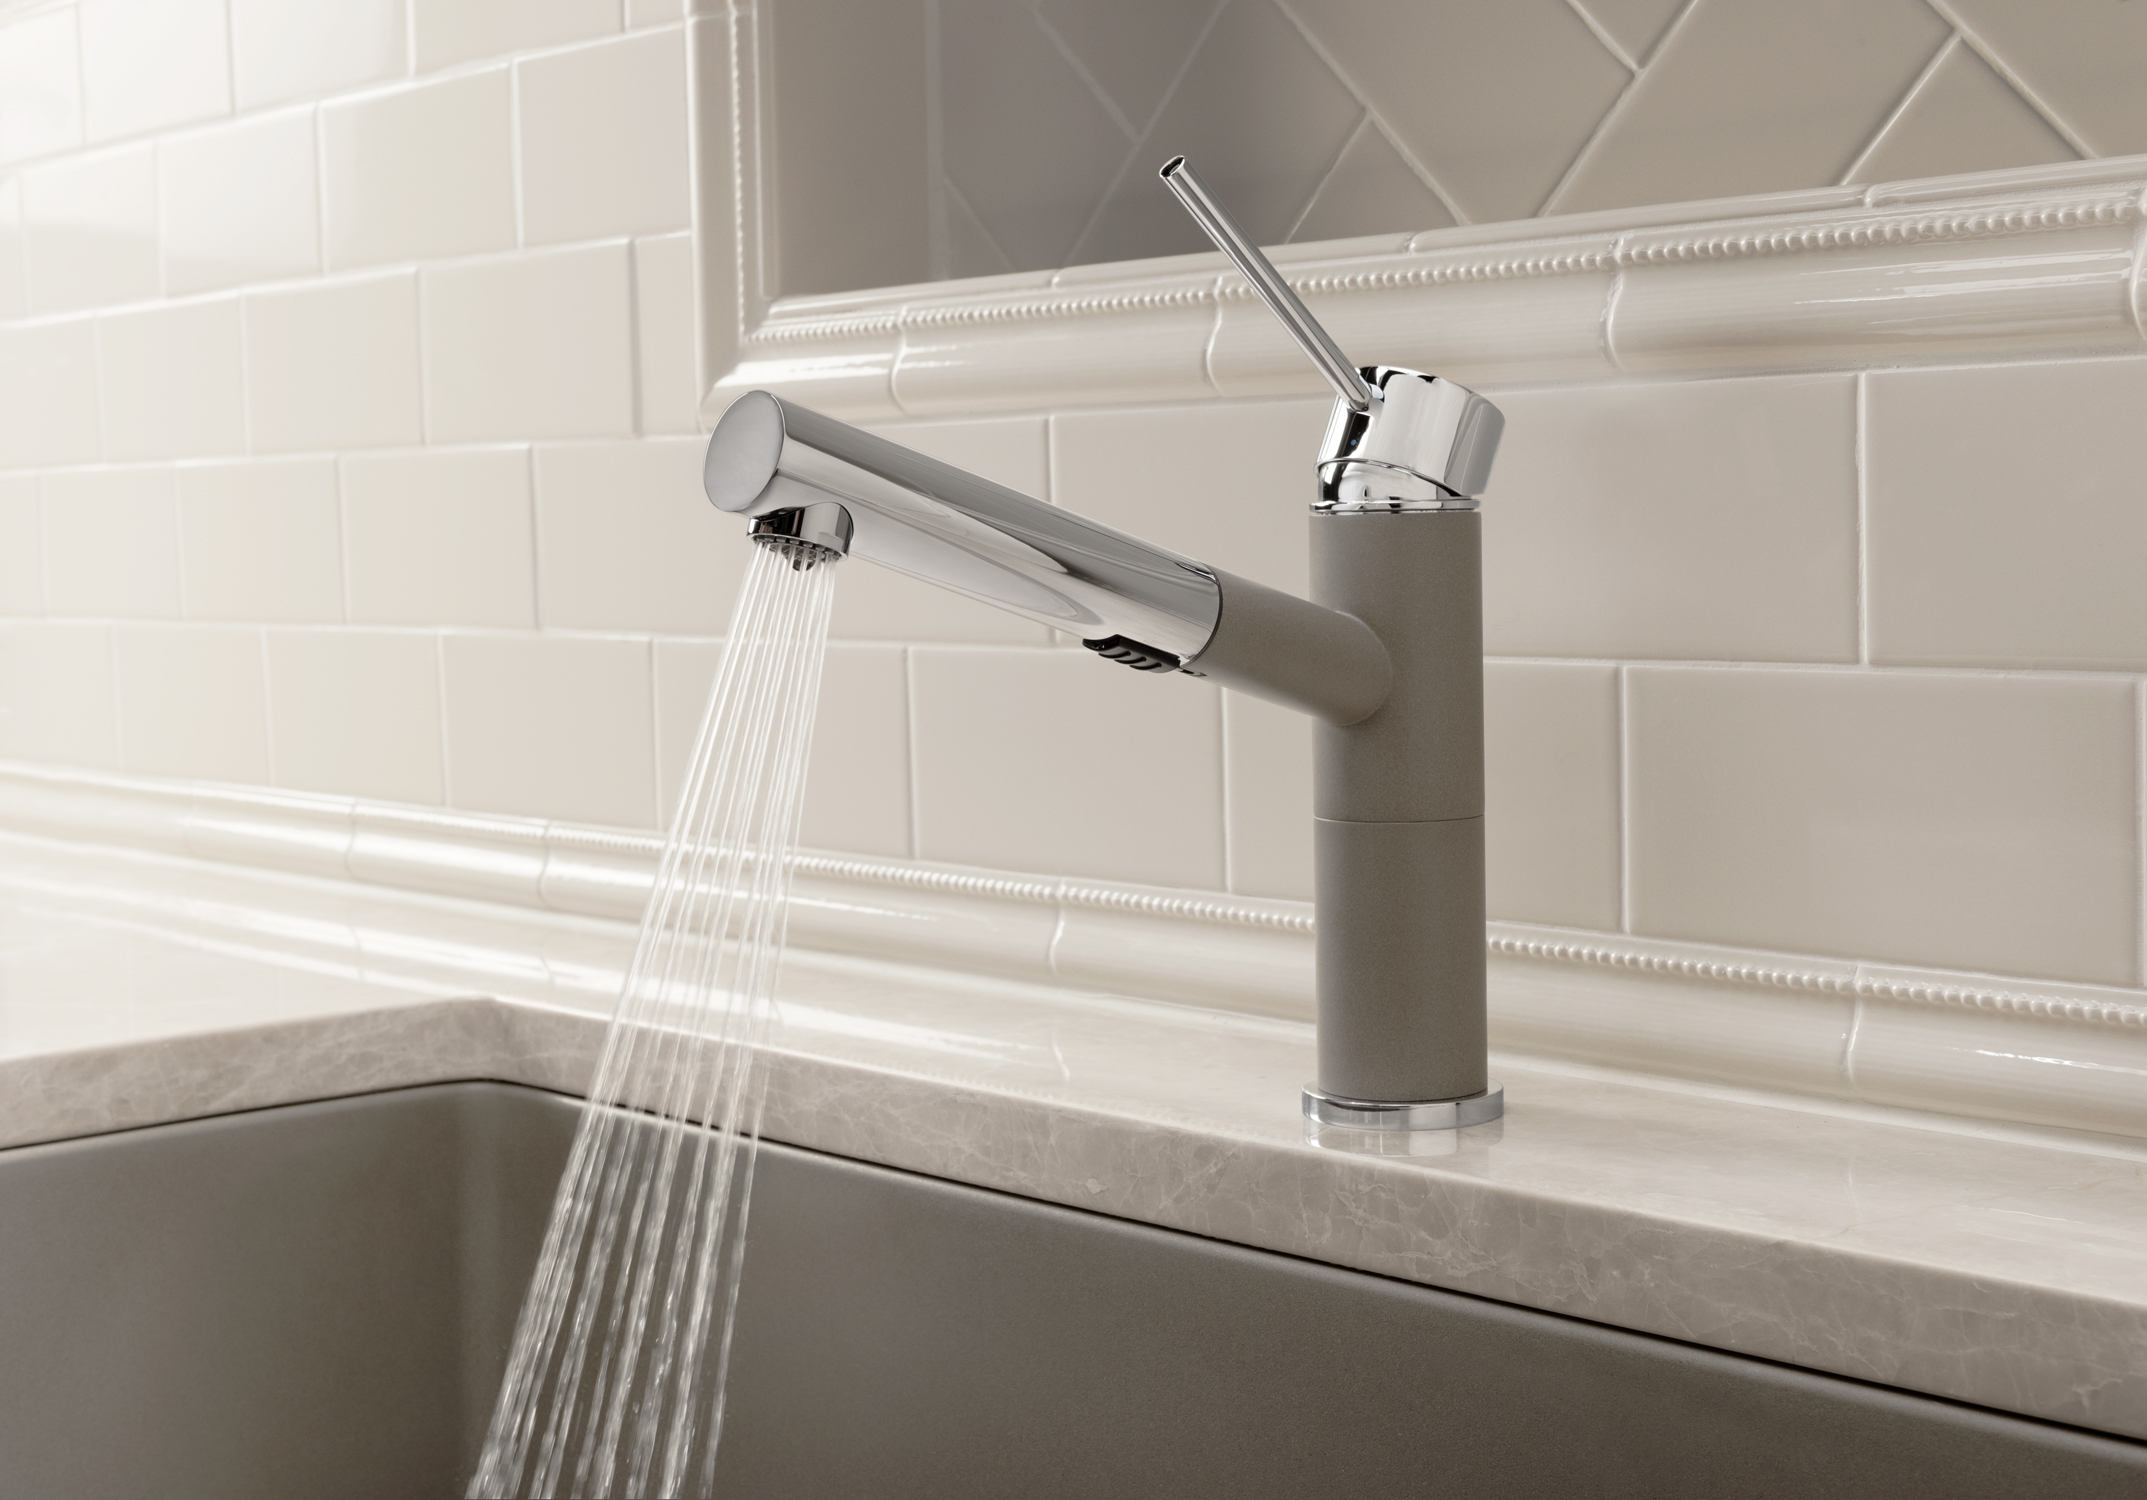 Superieur BLANCOu0027s New Kitchen Faucet Collection Features The ALTA Compactu2022  Extendable Pull Out Design With Dual Spray Feature. Especially Suitable For  Compact Sinks ...